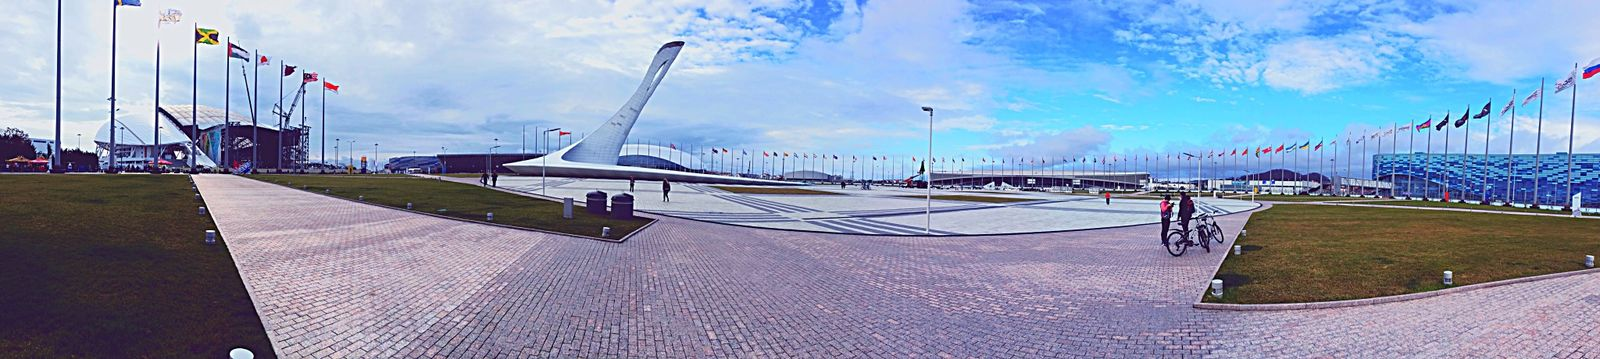 Sochi Panoramic Photography IPhoneography Iphoneonly Iphonephotography Iphone5s Iphonephoto